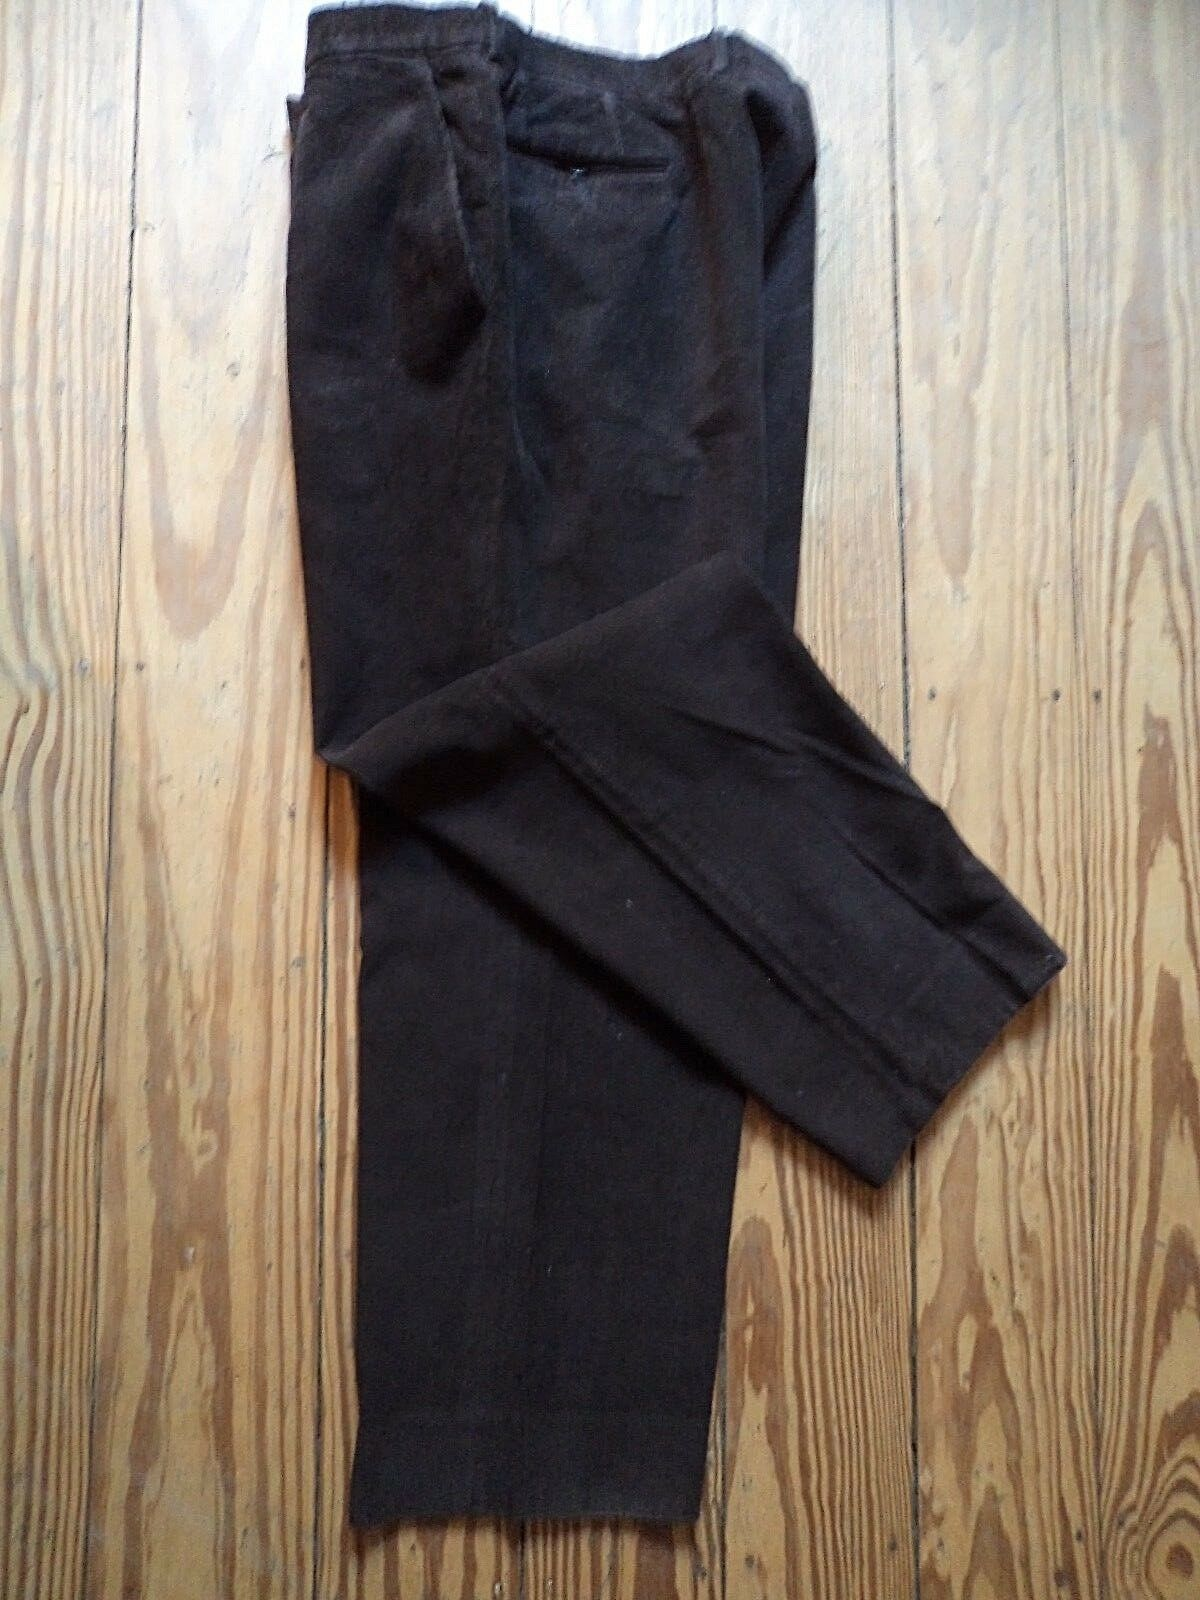 Lanvin PARIS finemente Kord Pantaloni In In In Marronee Scuro MADE IN FRANCE TG 56 come nuovo NP ccbcb8